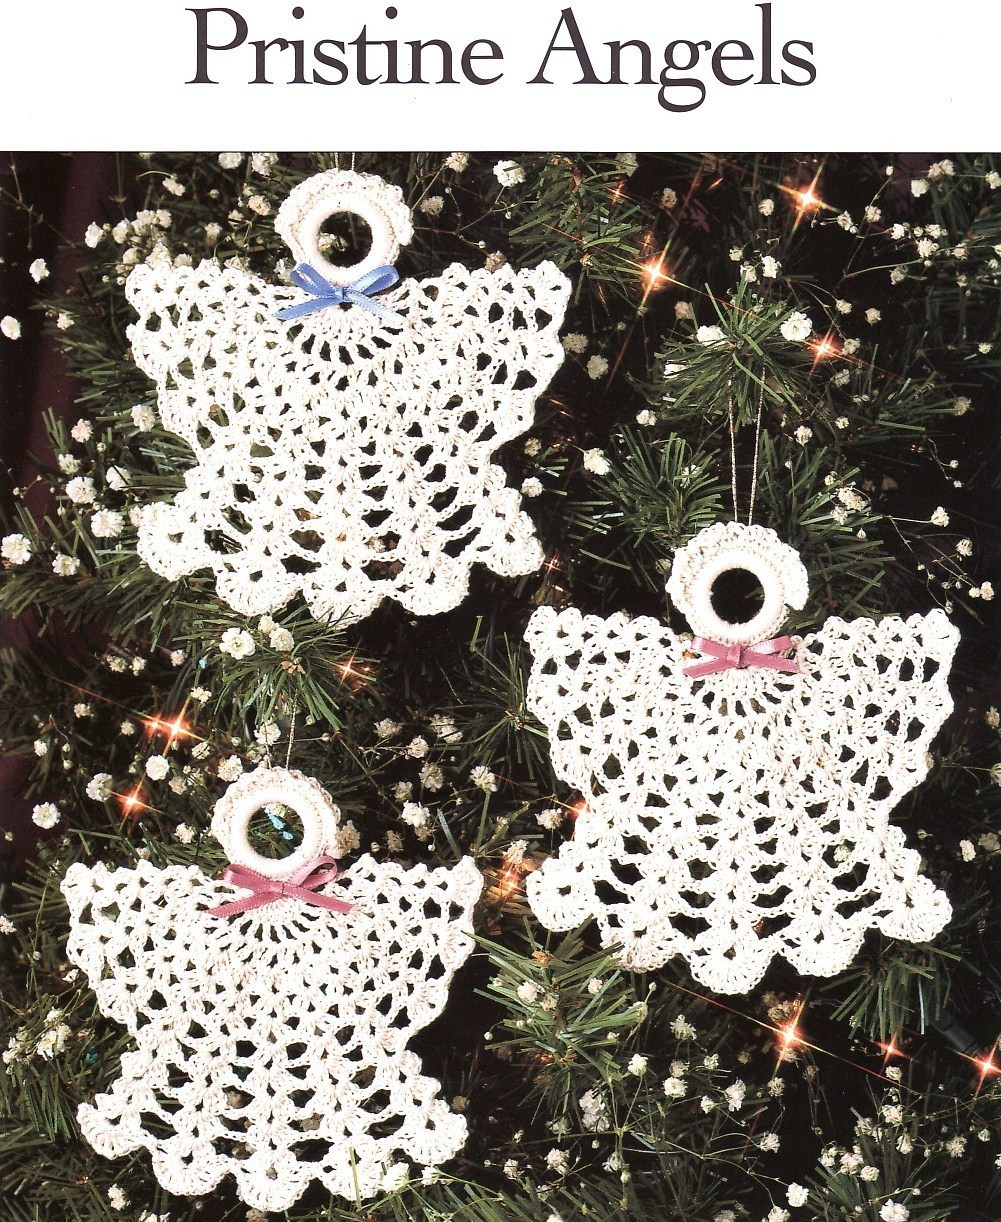 Awesome Pristine Angels Crochet Patterns Christmas ornaments Free Christmas Crochet Patterns Of Charming 49 Images Free Christmas Crochet Patterns